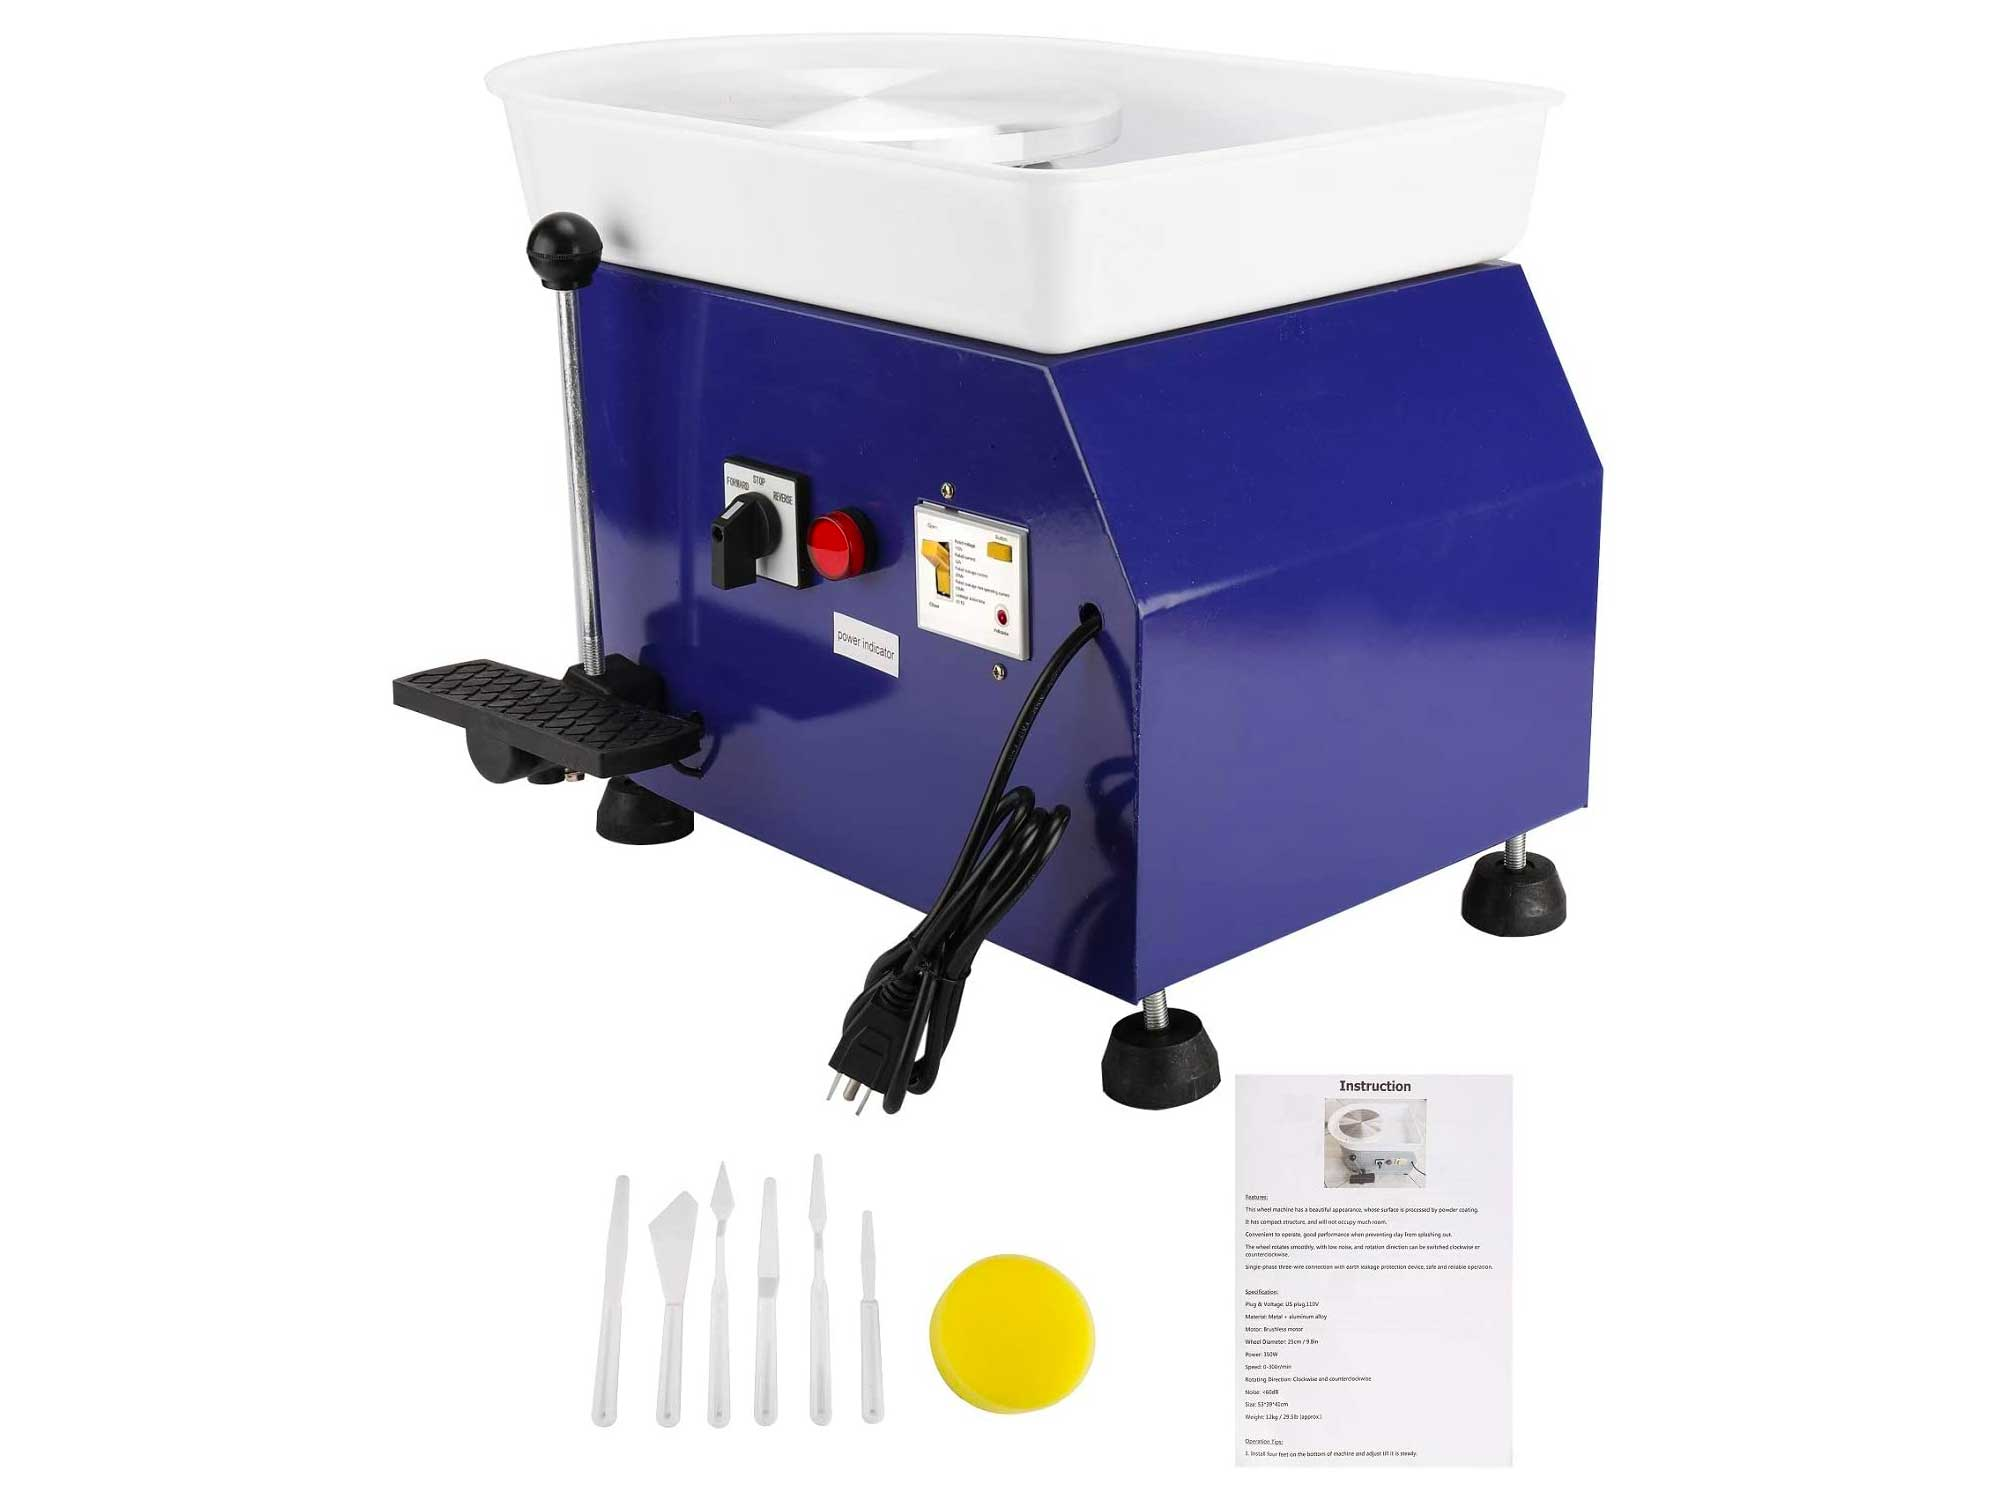 25CM 350W Electric Pottery Wheel Machine Ceramic Clay Work Forming Machine with Lever and Foot Pedal ABS Basin DIY Clay Art Craft Shaping Tools (Blue Color)